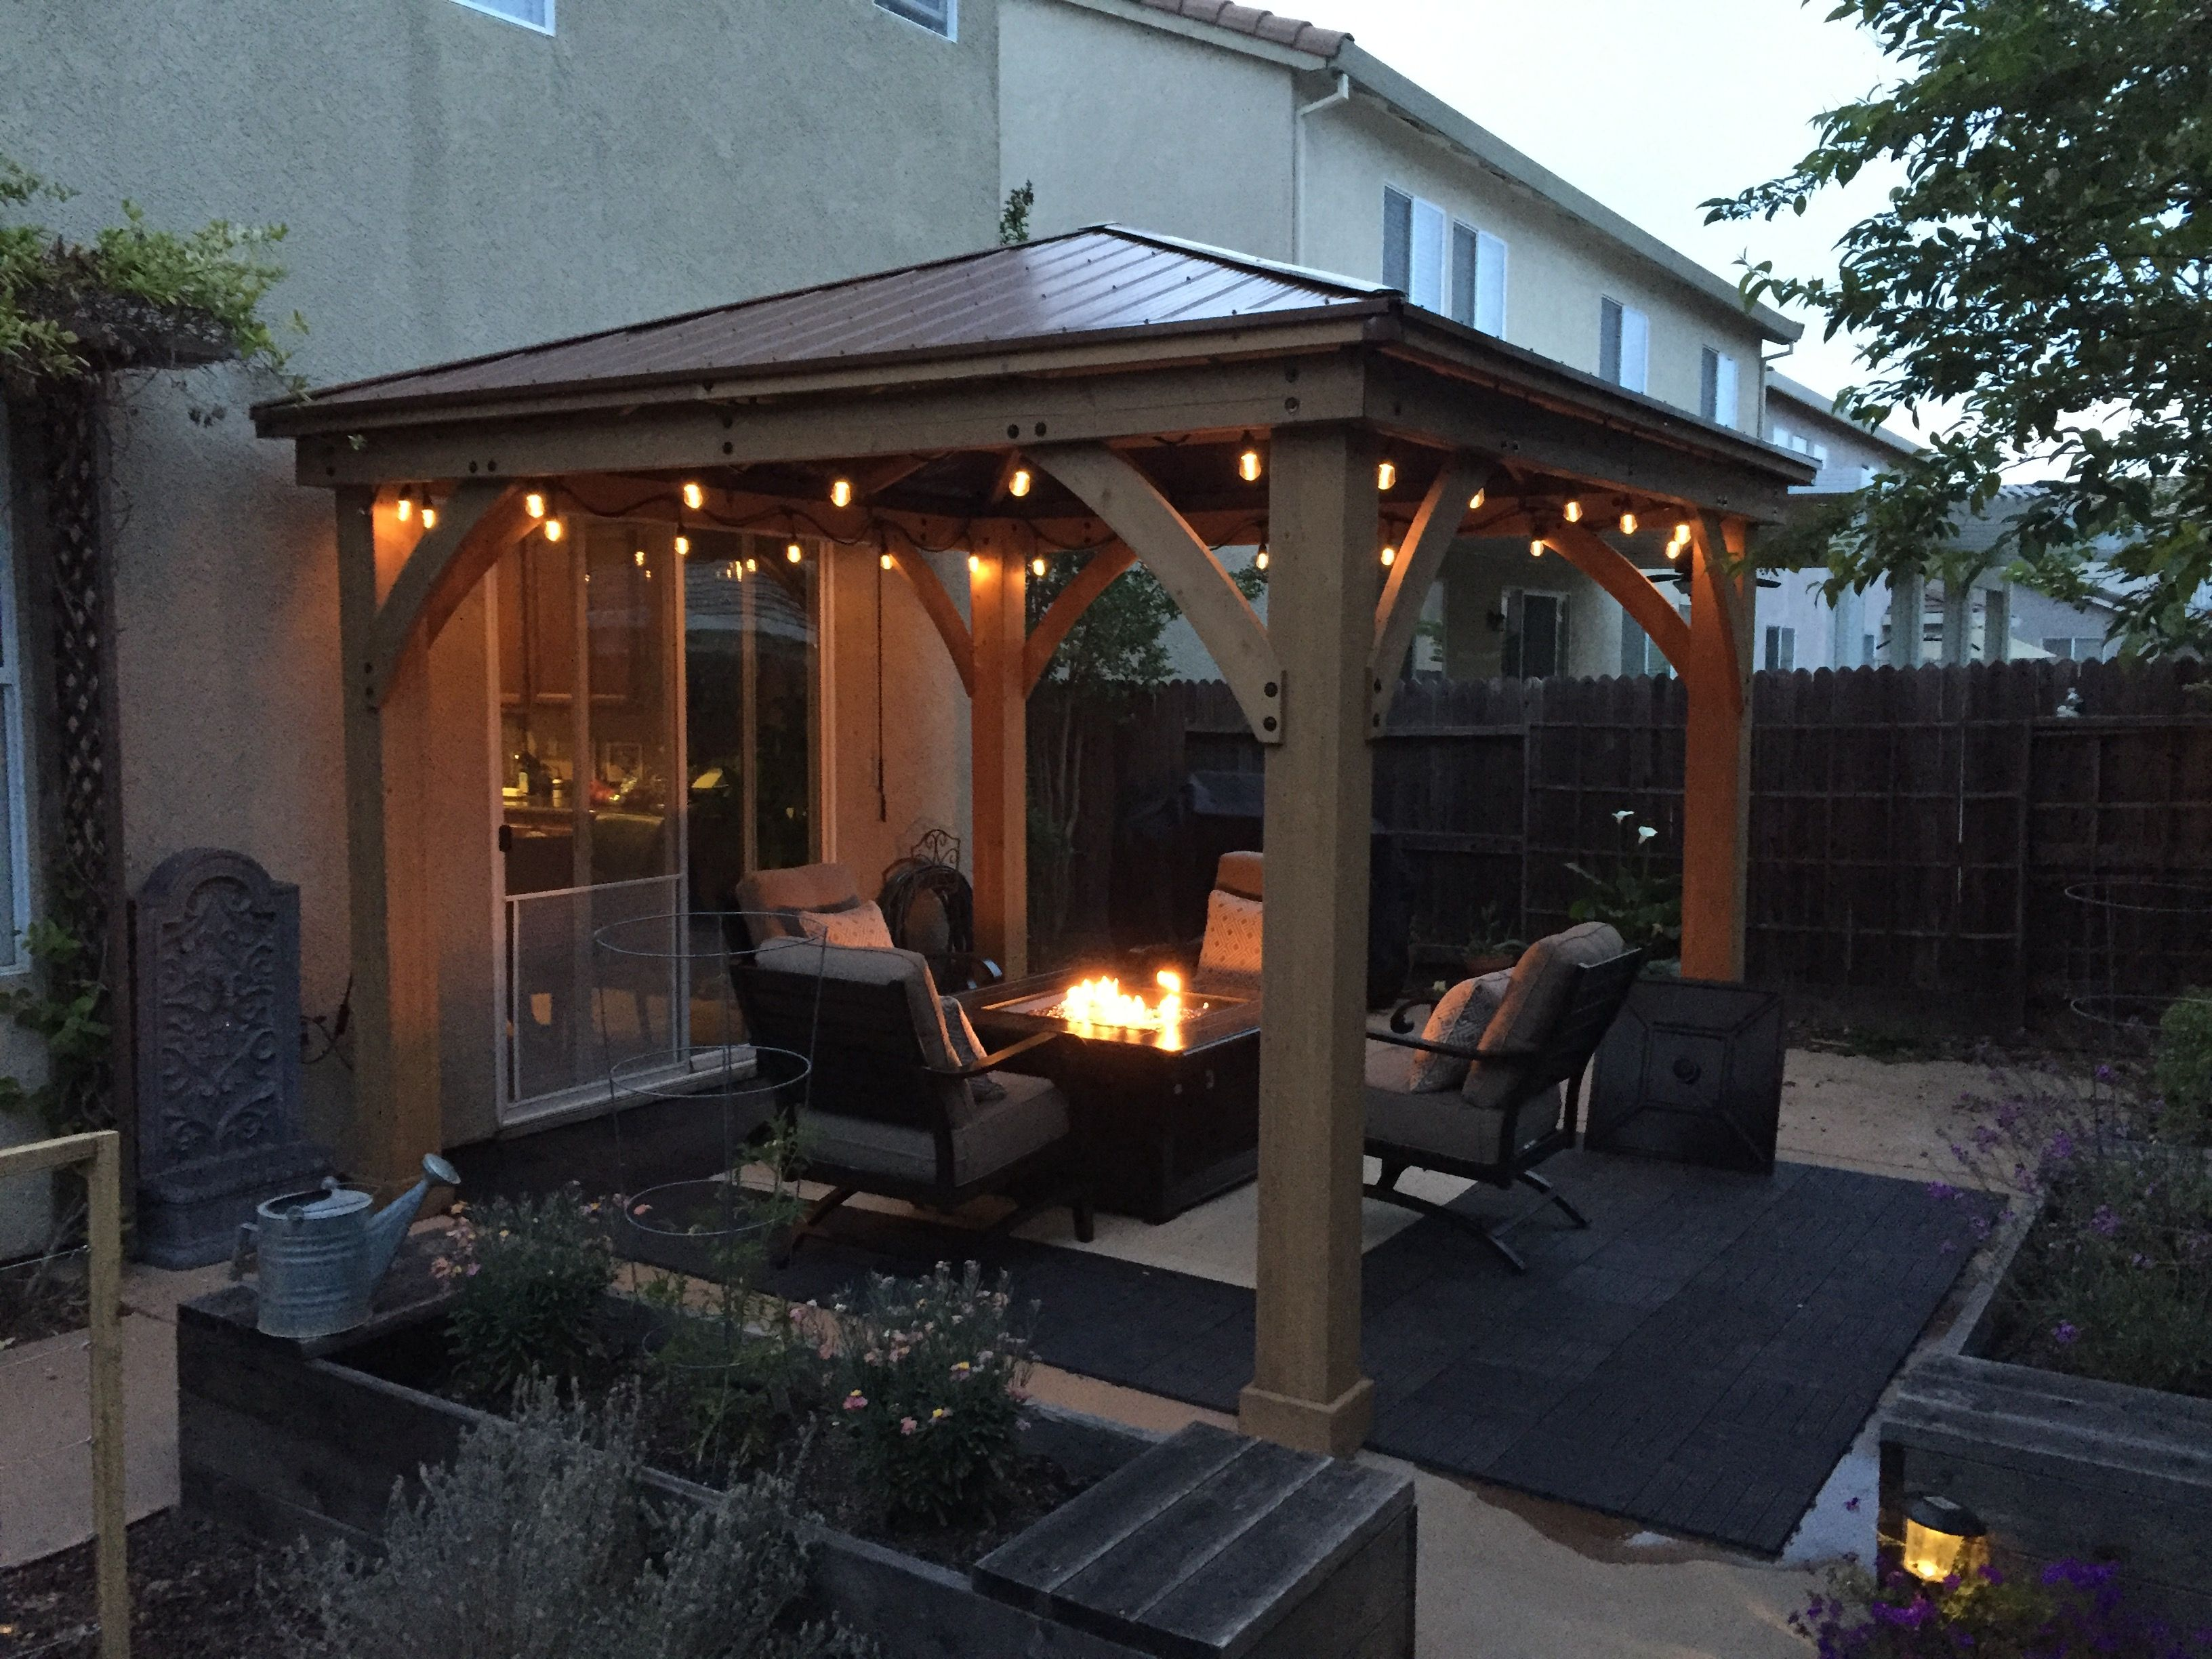 Yardistry 12x12 Cedar Gazebo From Costco This Thing Is Amazing Adds A New Dimension To Your Backyard I Love It Backyard Backyard Gazebo Patio Gazebo